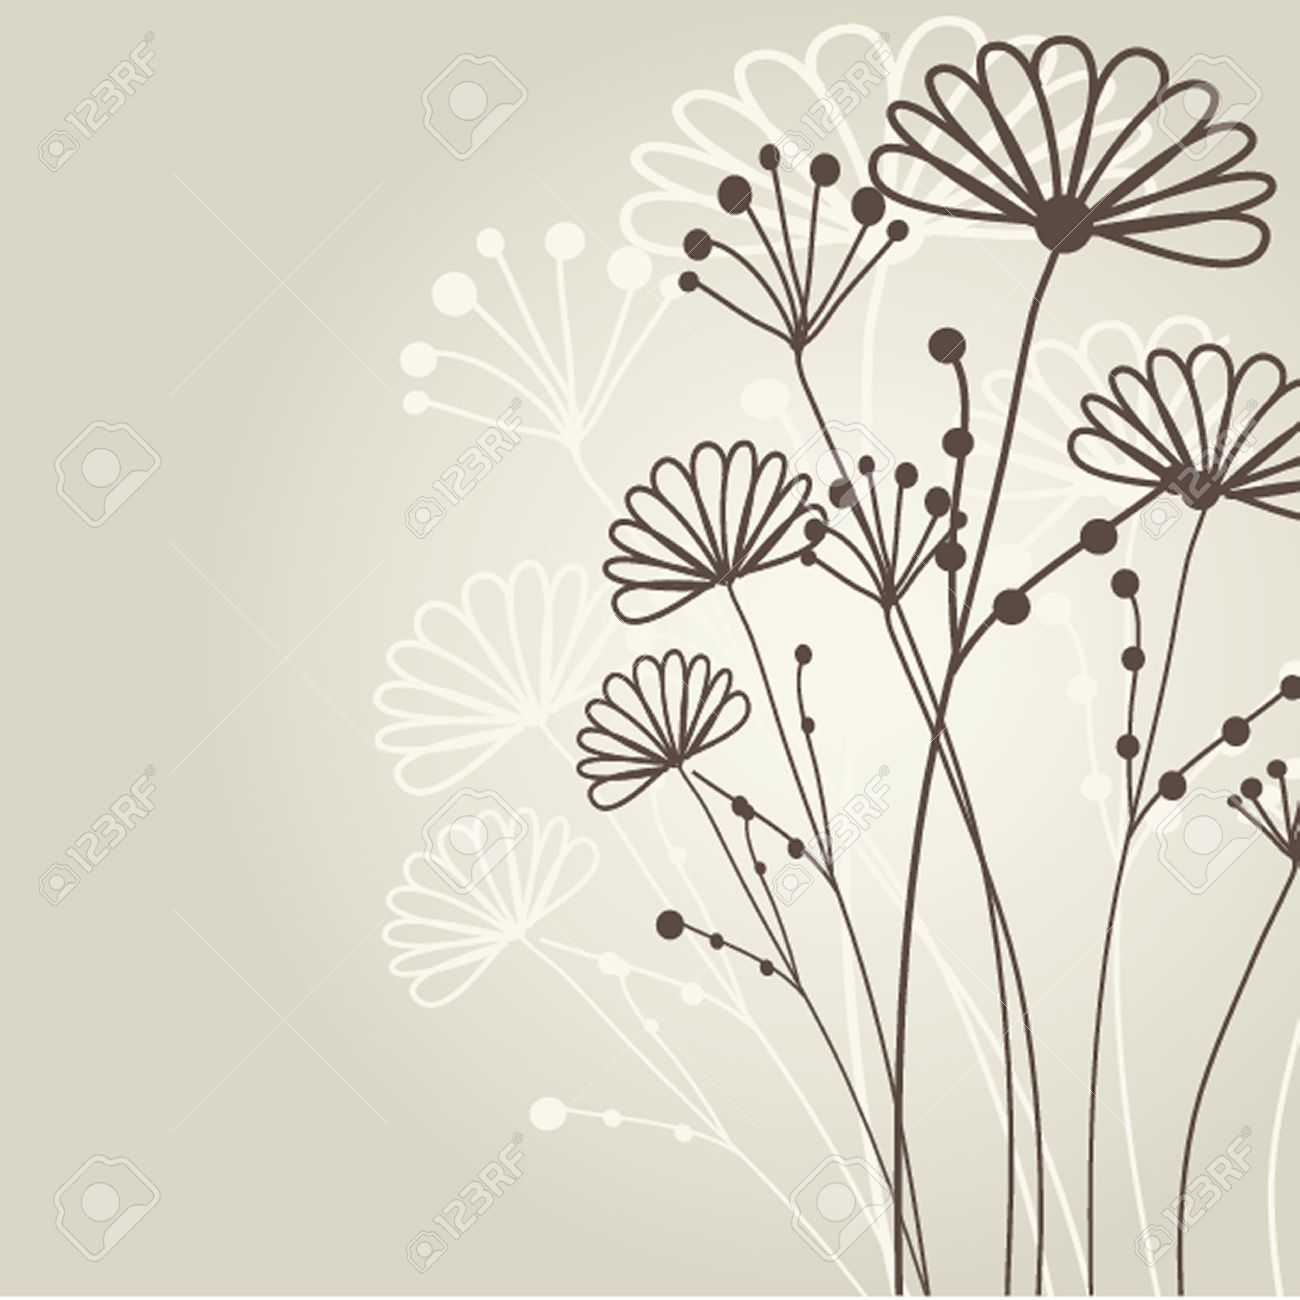 Vintage greeting card with hand drawn flowers royalty free vintage greeting card with hand drawn flowers stock vector 19862083 ccuart Image collections